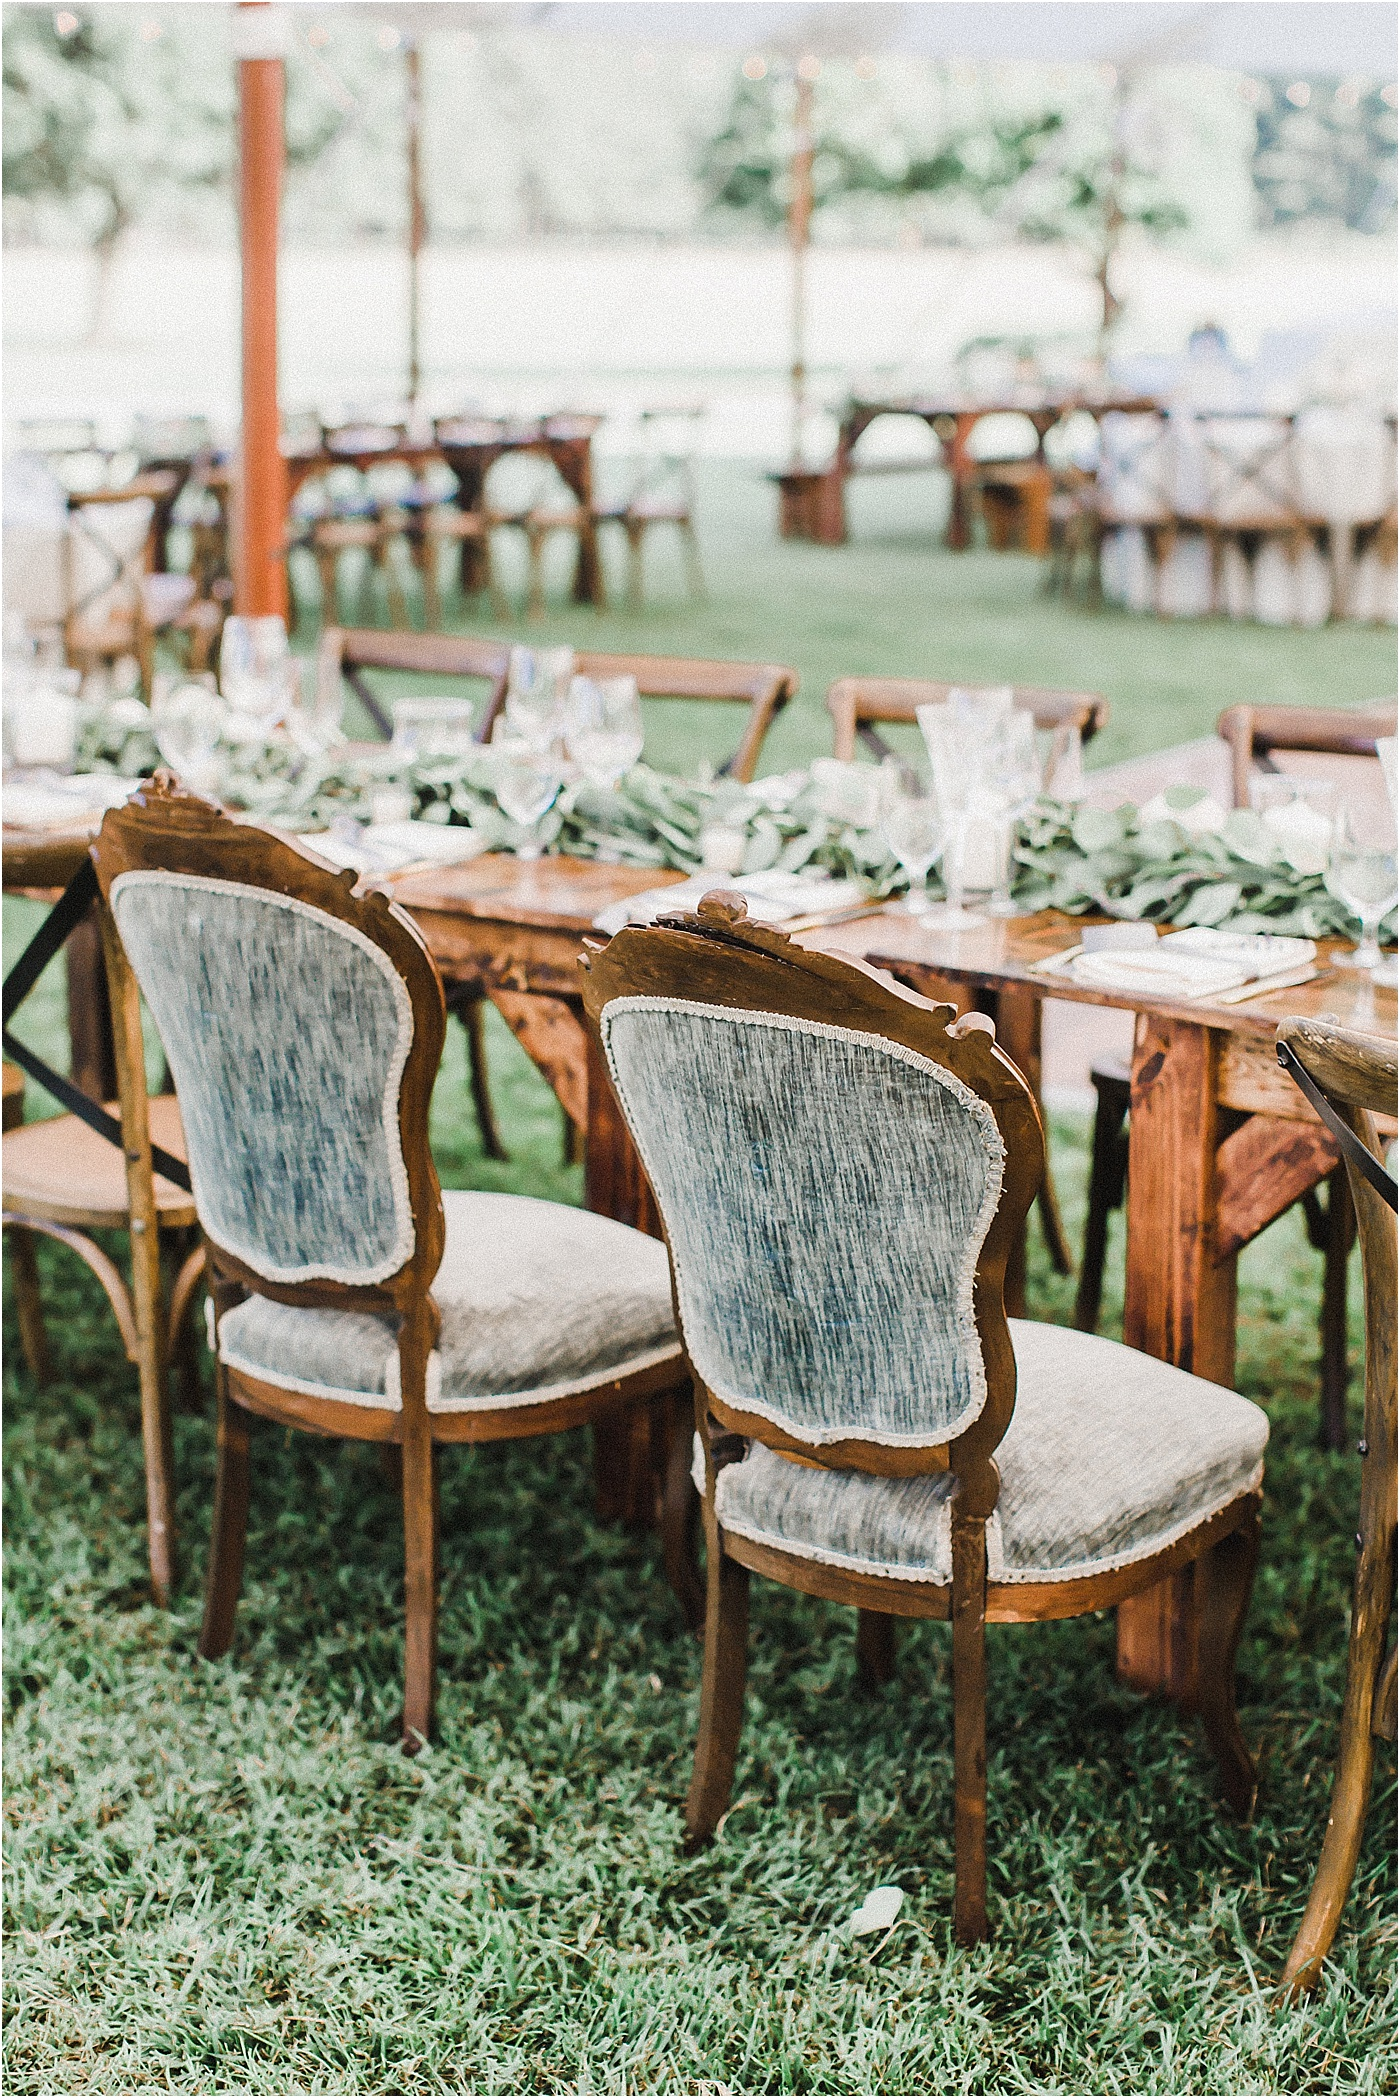 Vintage Seating + Farm Tables Wedding